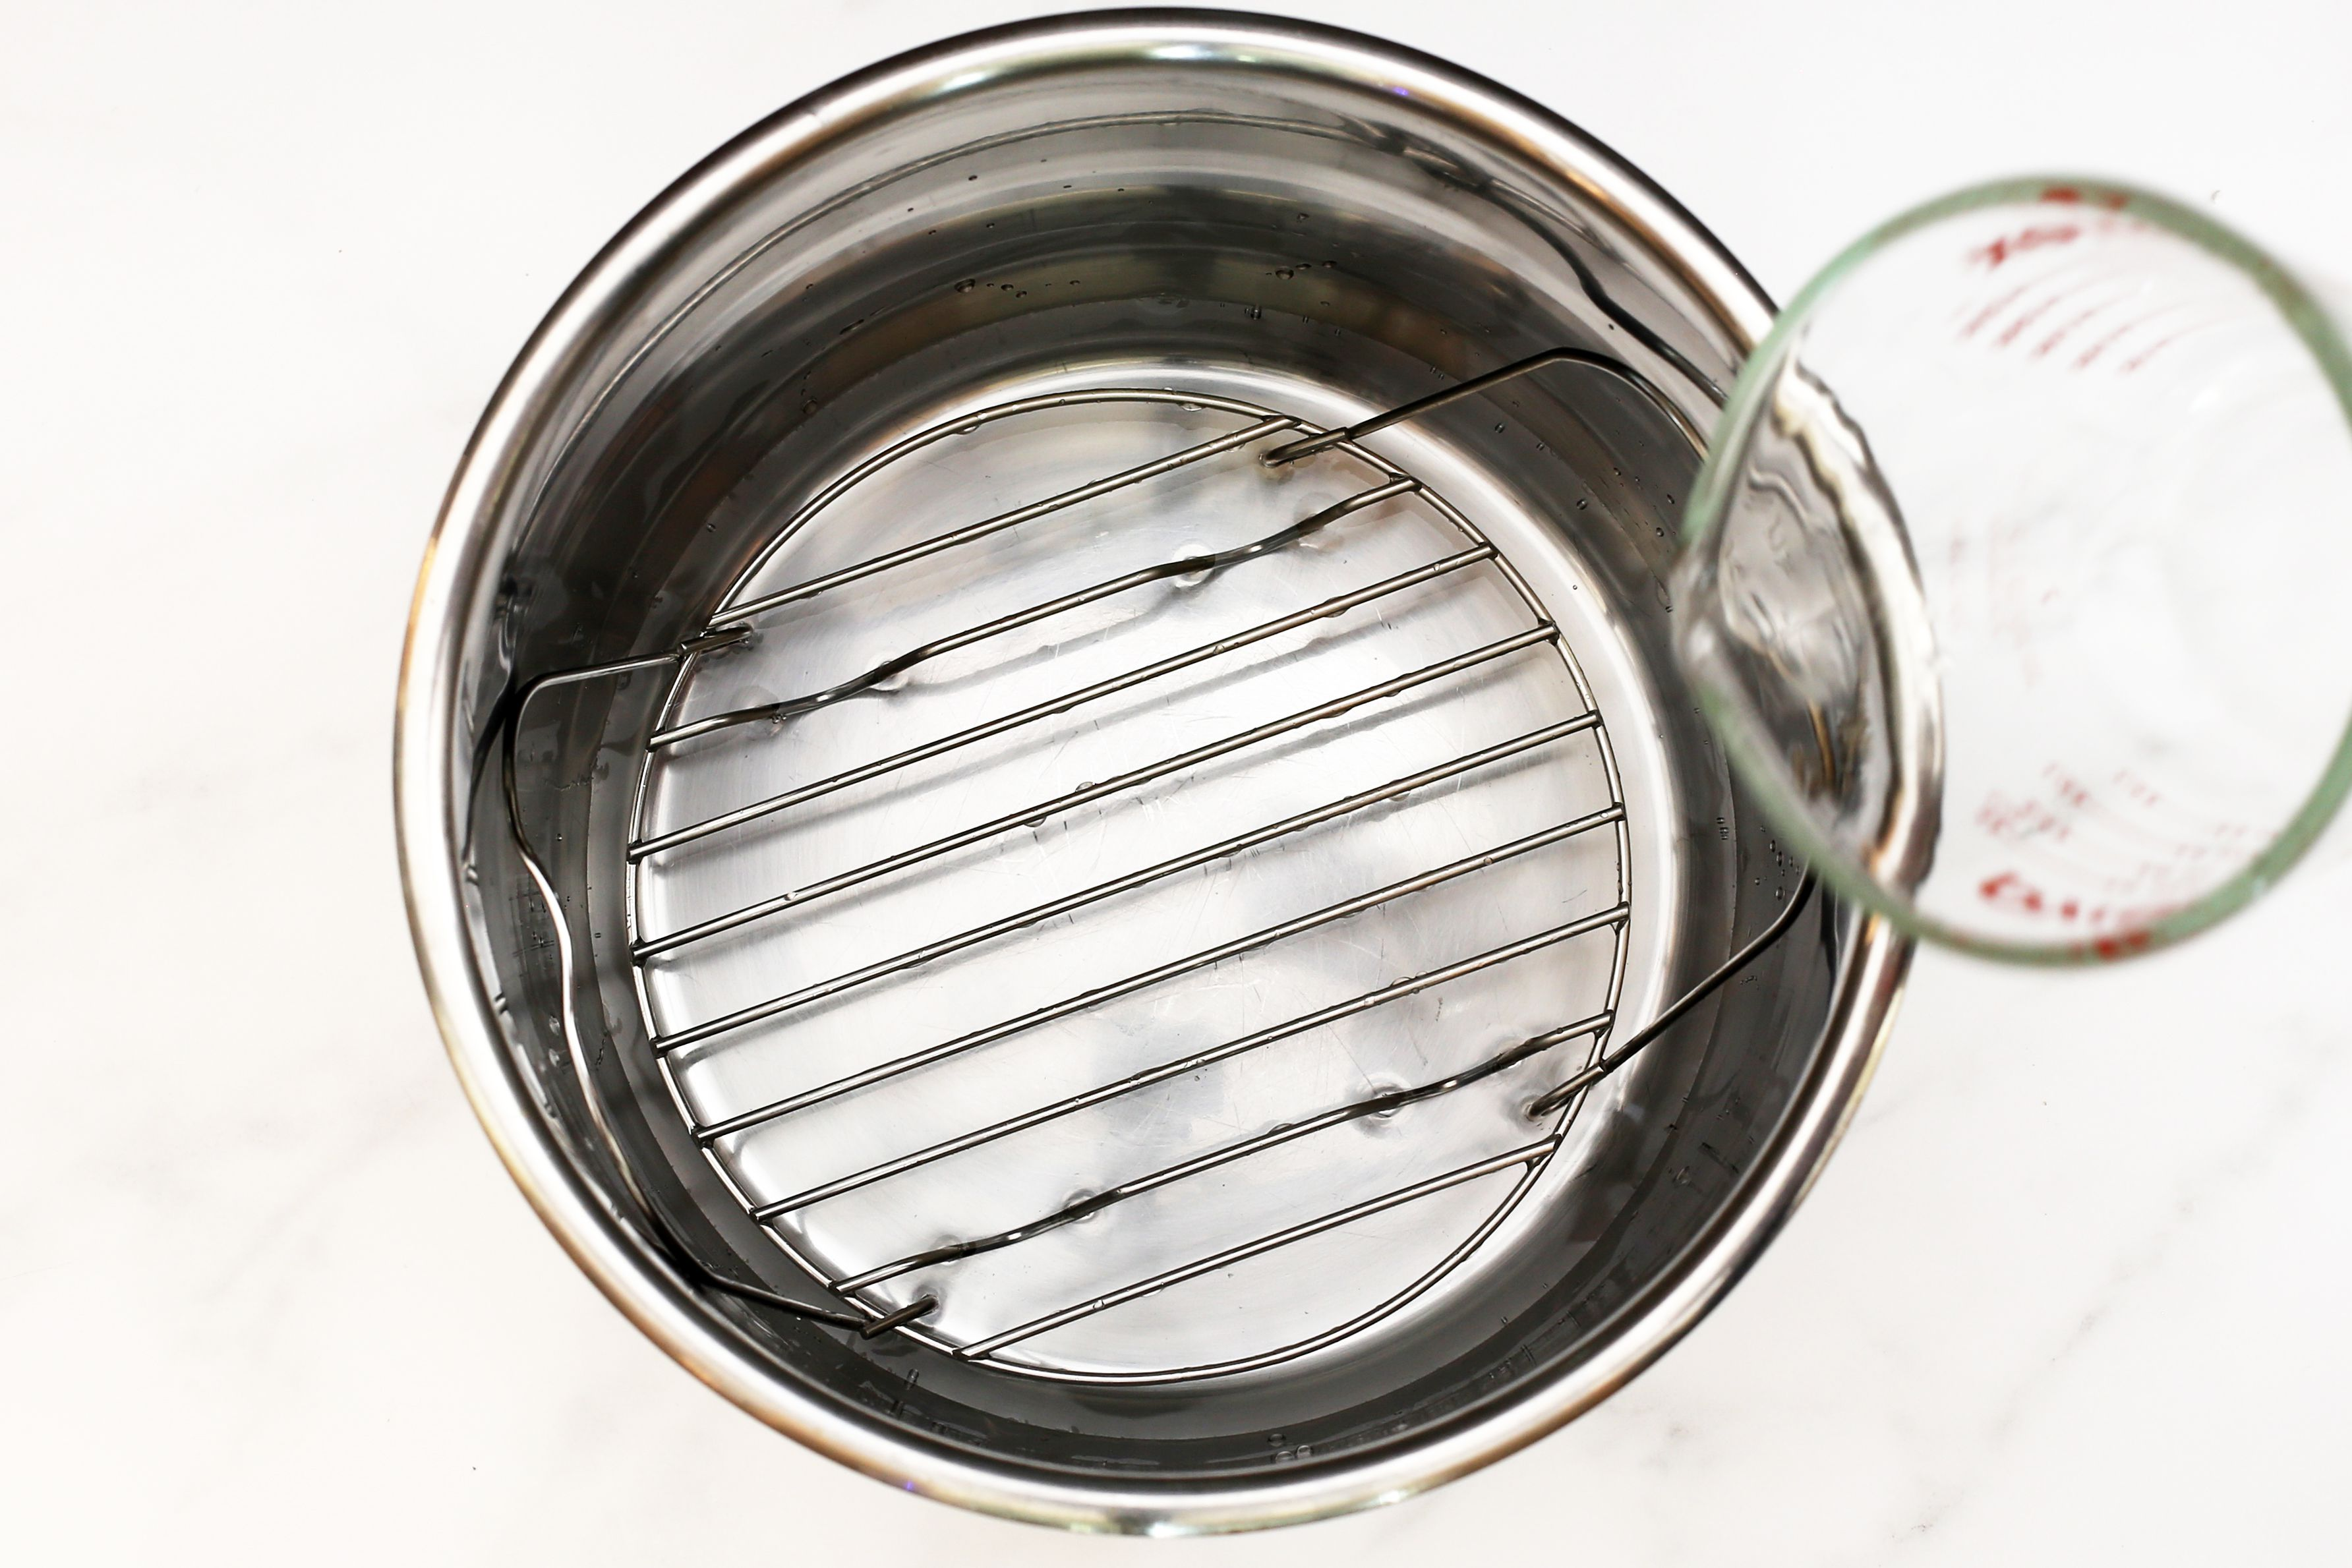 instant pot trivet and water